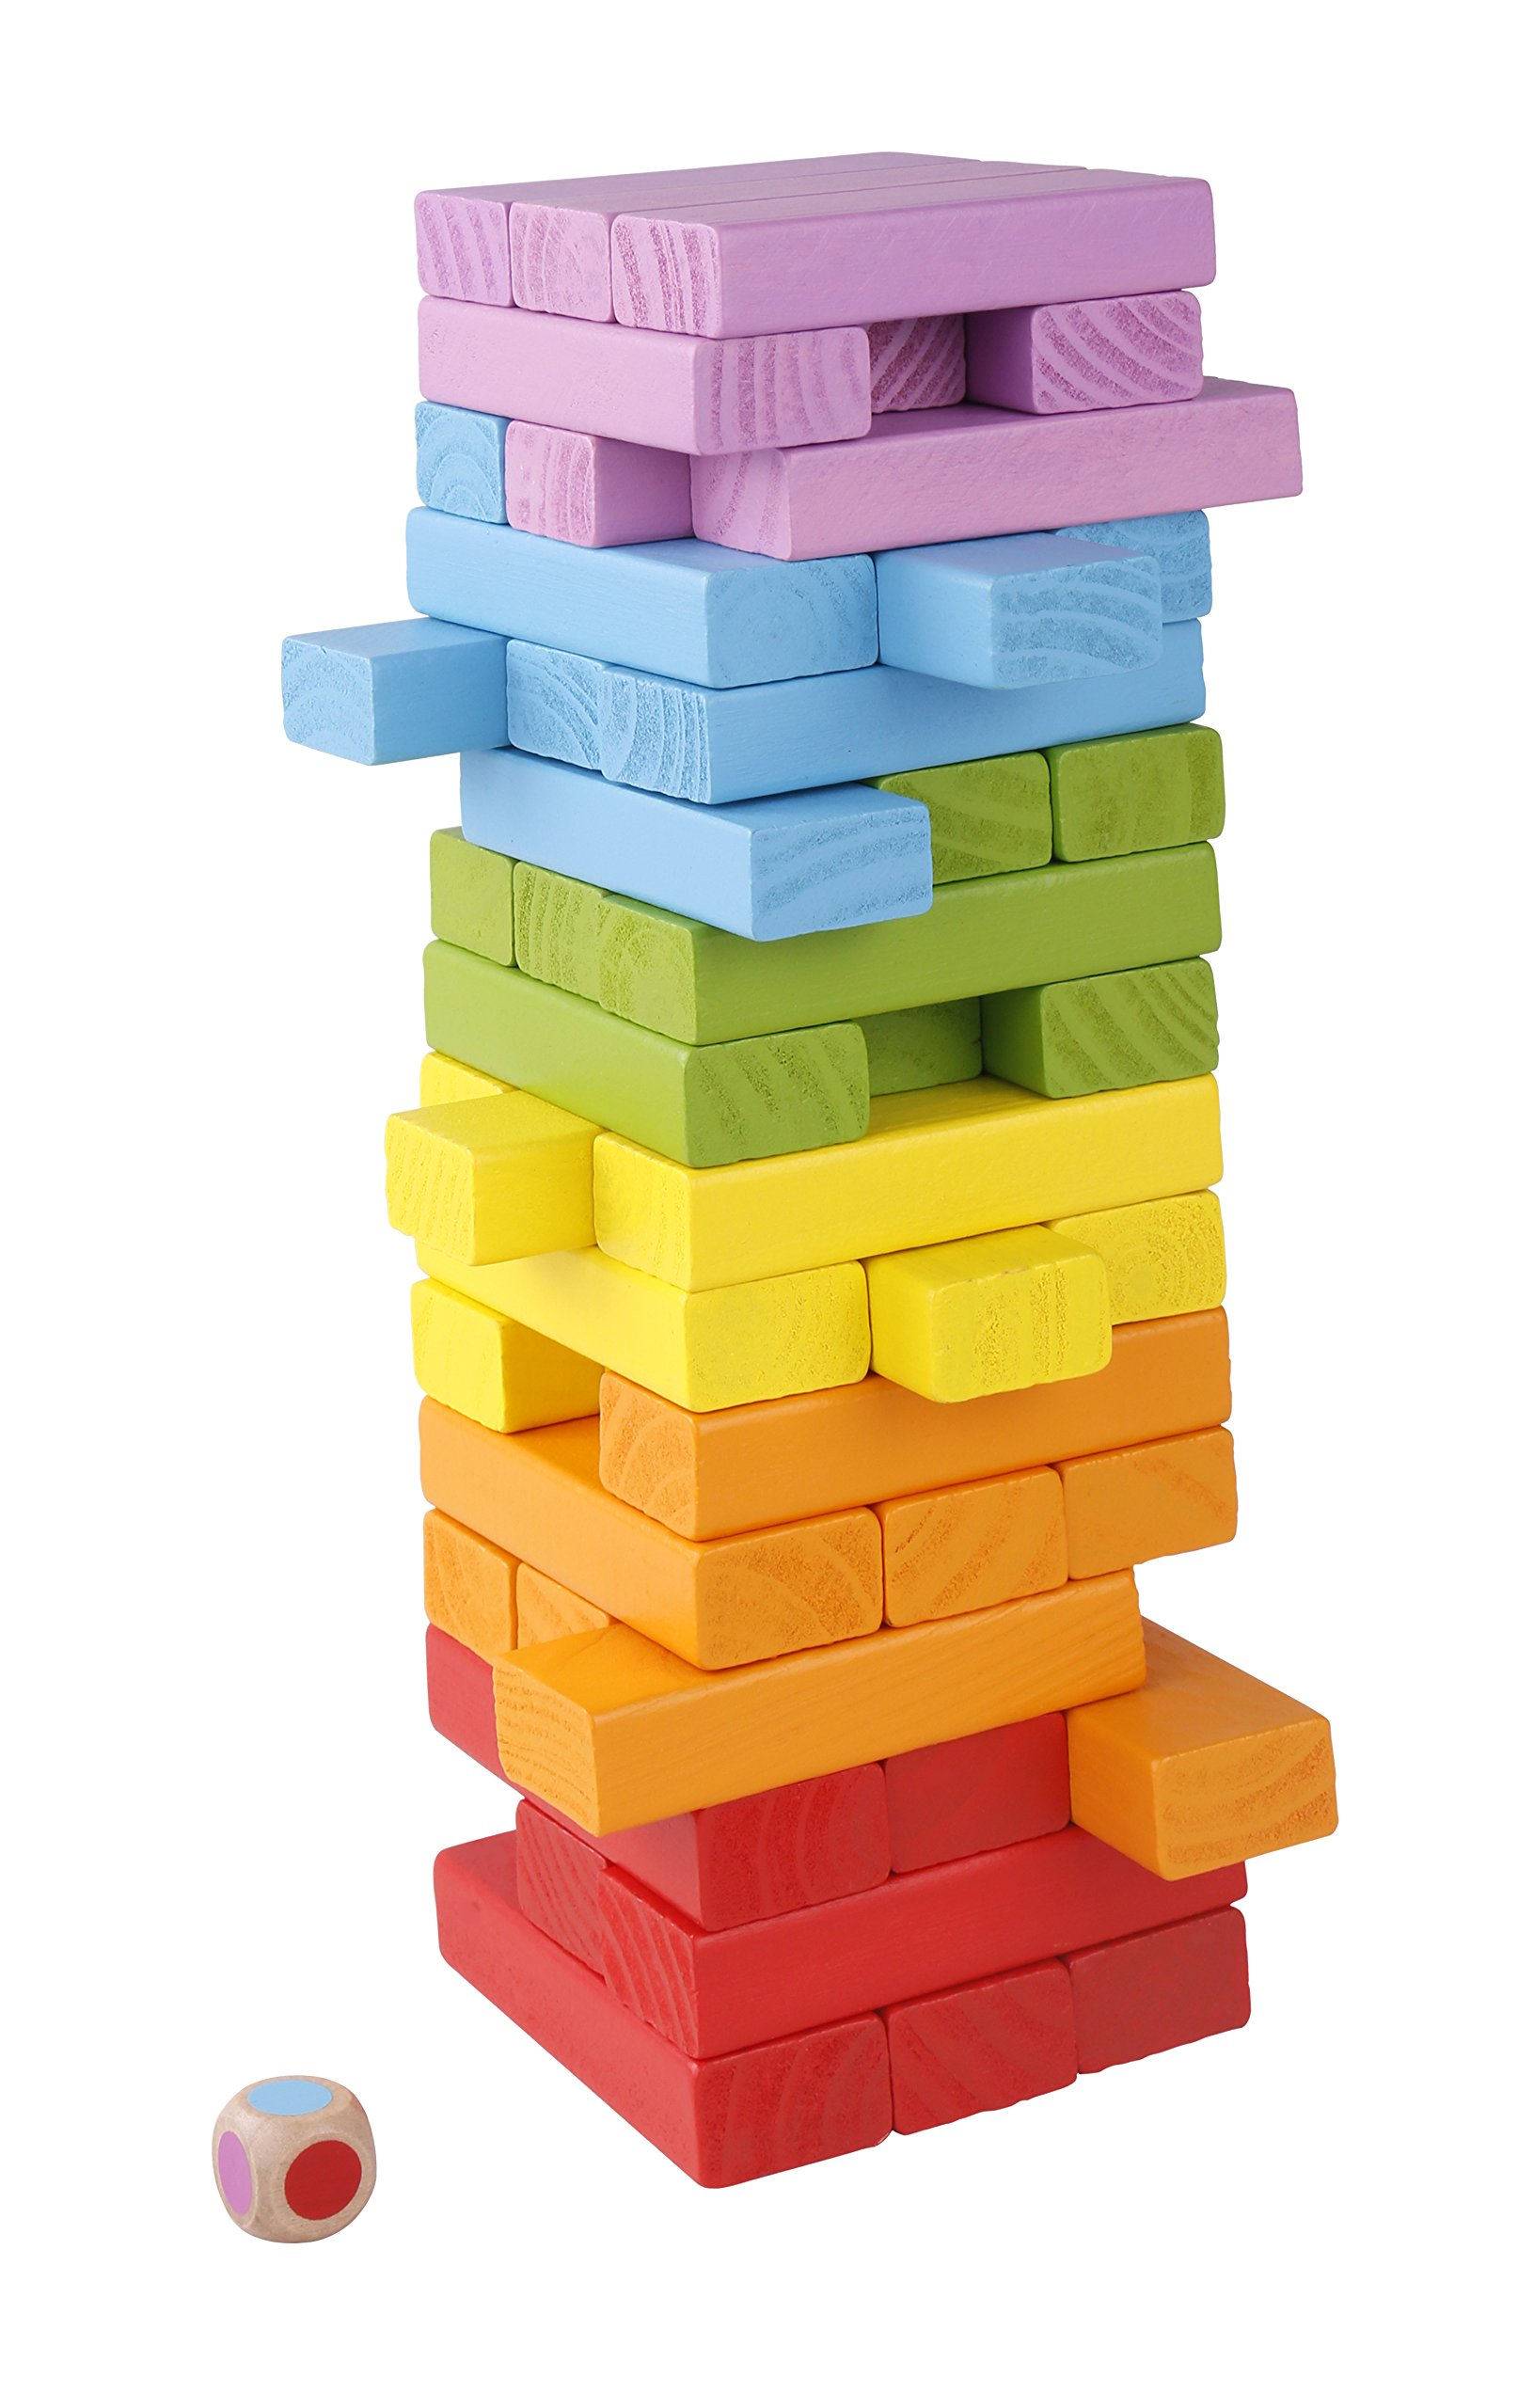 Pidoko Kids Wooden Stacking and Tumbling Blocks Game - 48 Pieces Premium Quality Set Tower and Dice